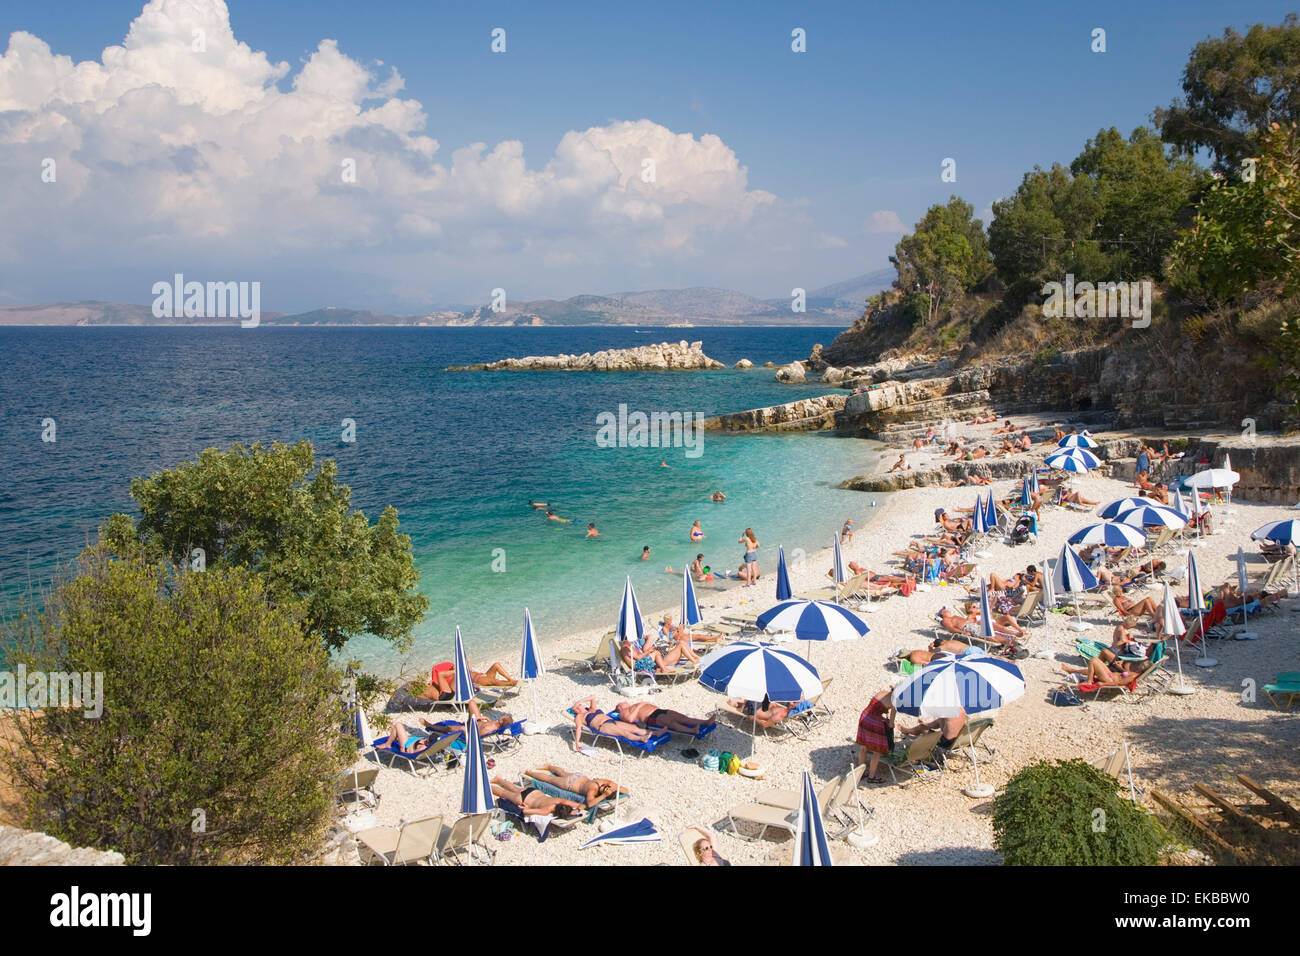 Beach crowded with holidaymakers, Kassiopi, Corfu, Ionian Islands, Greek Islands, Greece, Europe - Stock Image